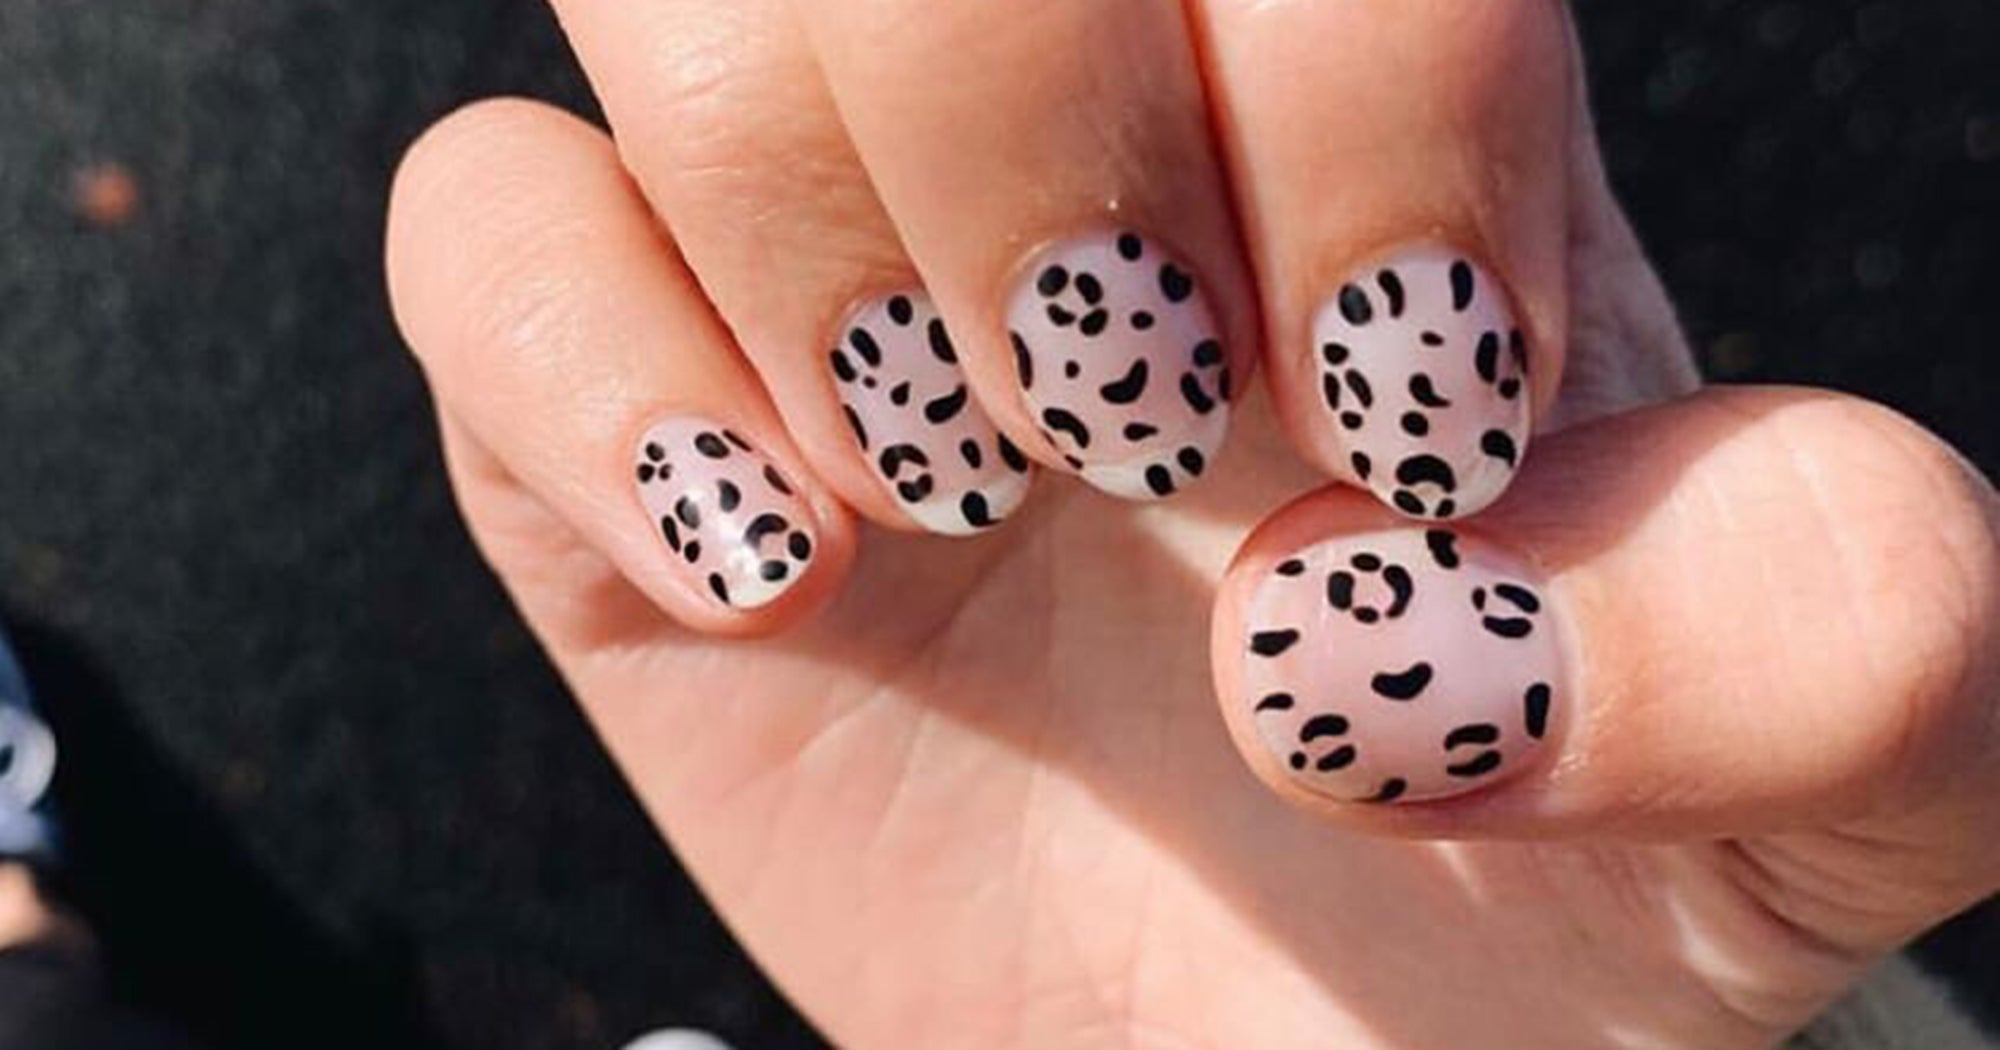 Black Nail Art Designs For Trendy Fall Manicure Ideas